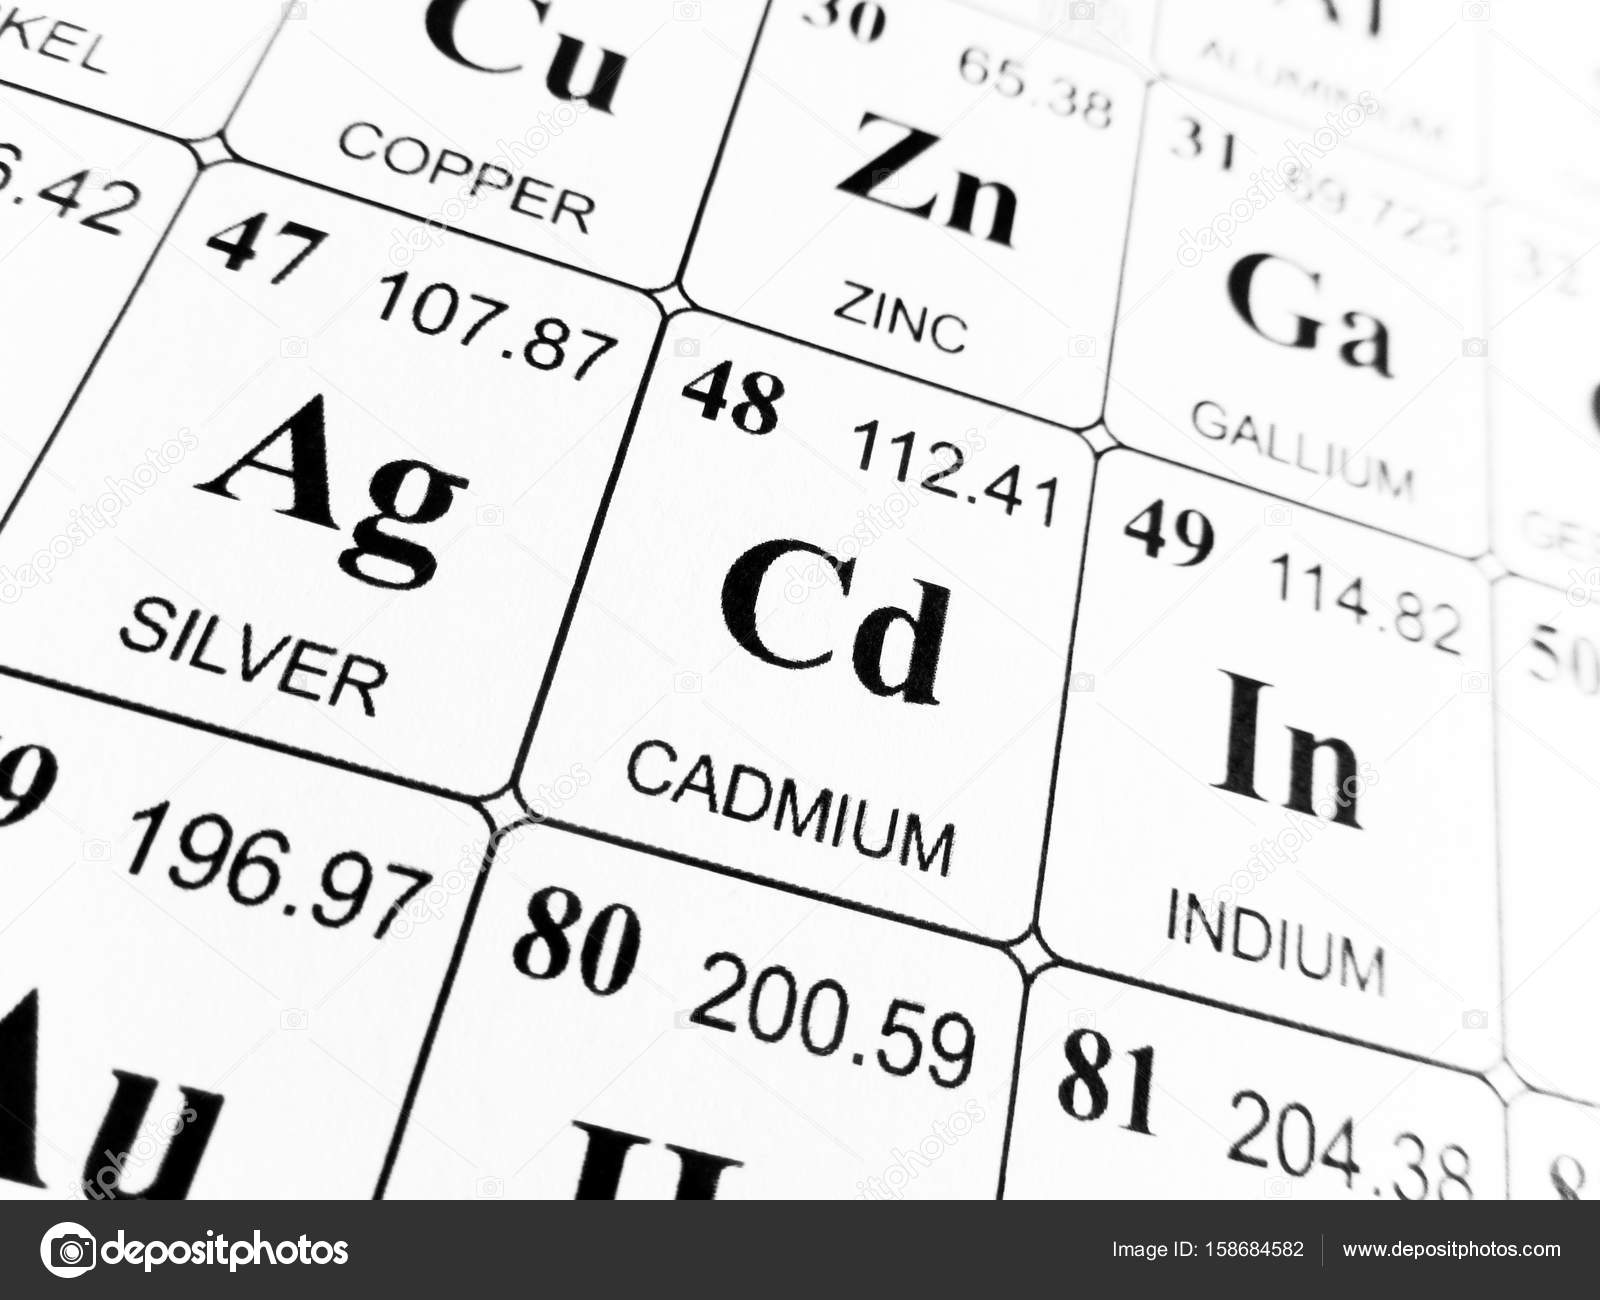 Cadmium On The Periodic Table Of The Elements Stock Photo